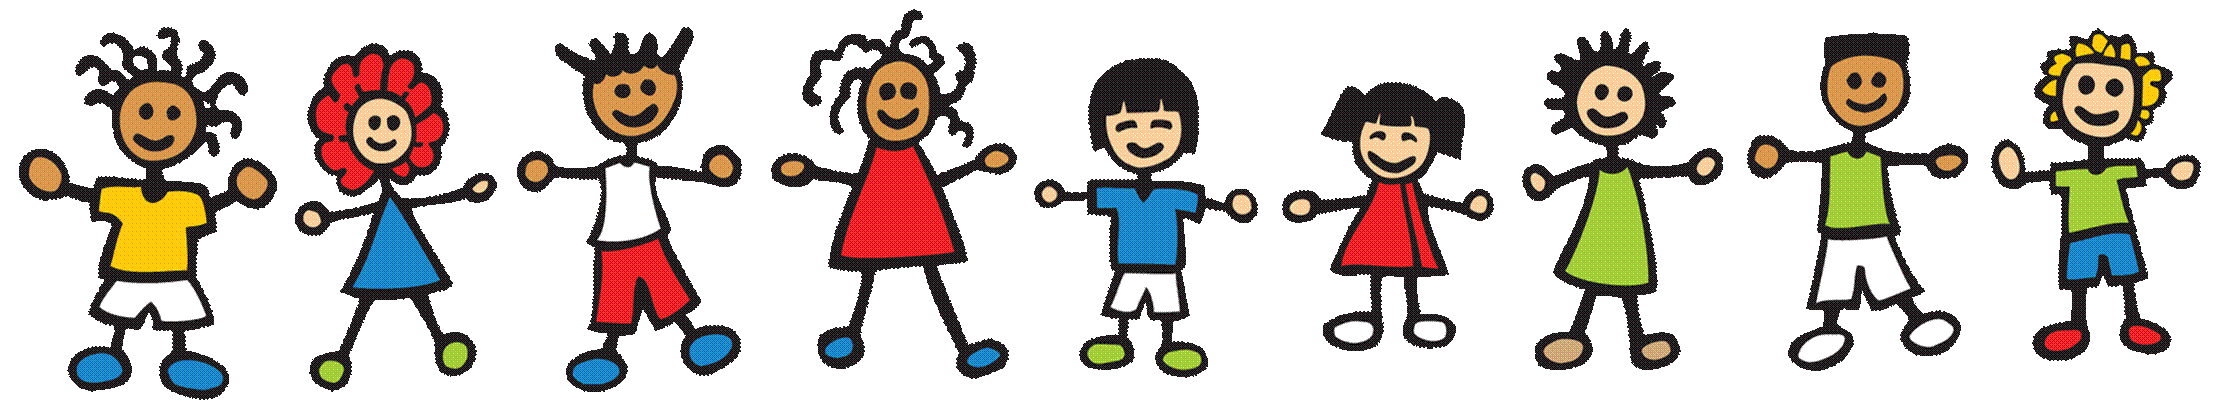 Middle school students in classroom clipart jpg transparent download Home - Enfield Public Schools jpg transparent download